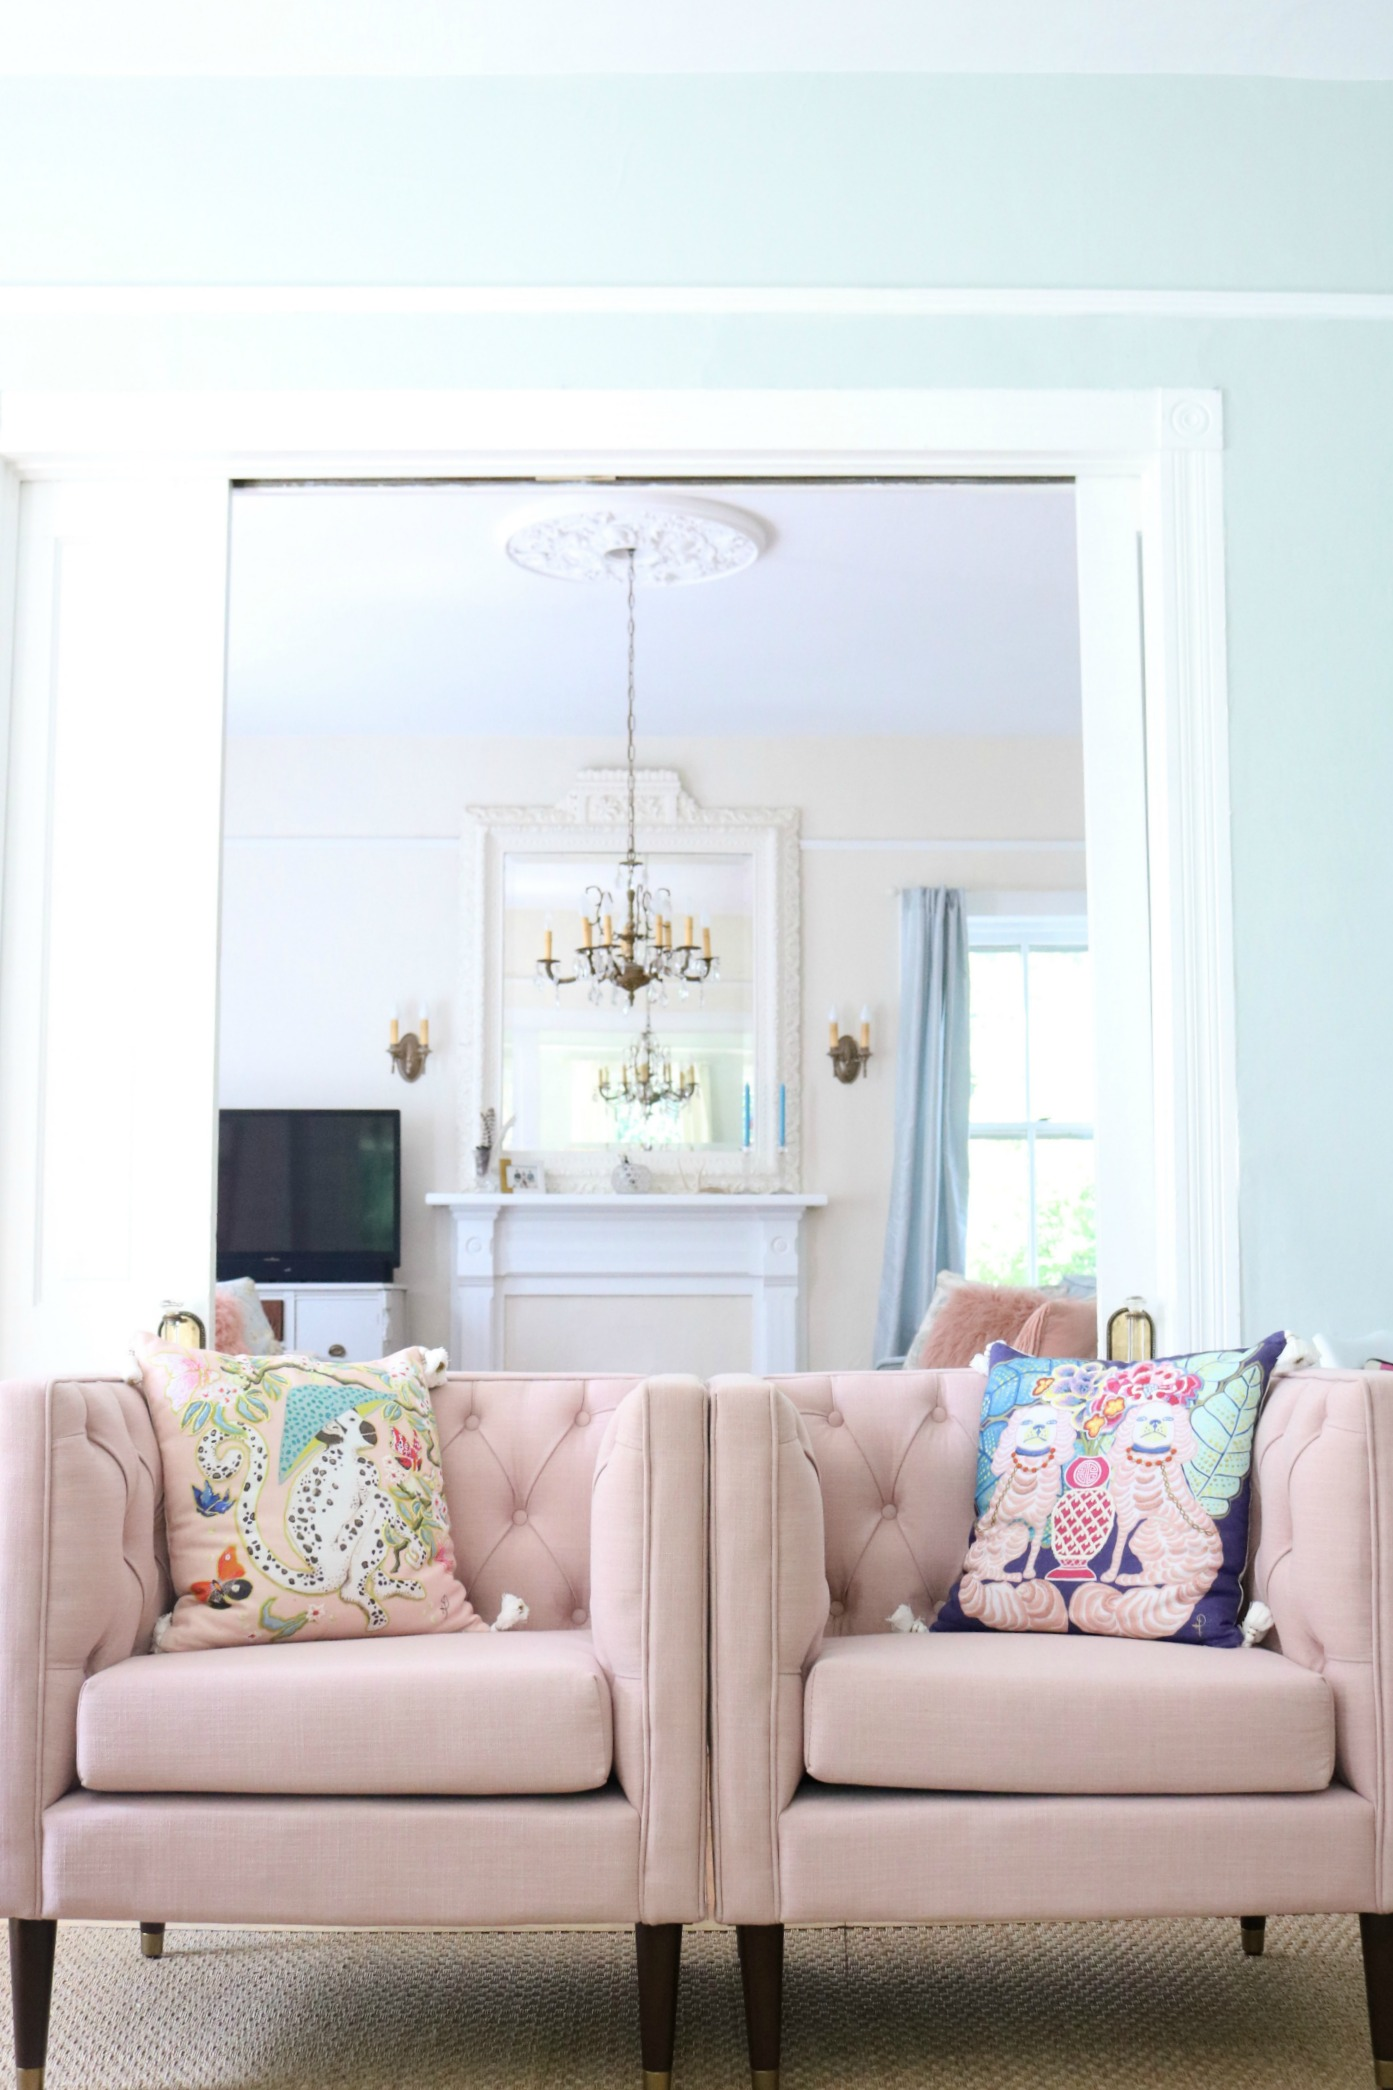 NATE BERKUS FOR TARGET U2013 TUFTED ARM CHAIR IN BLUSH! PILLOWS FROM  ANTHROPOLOGIE